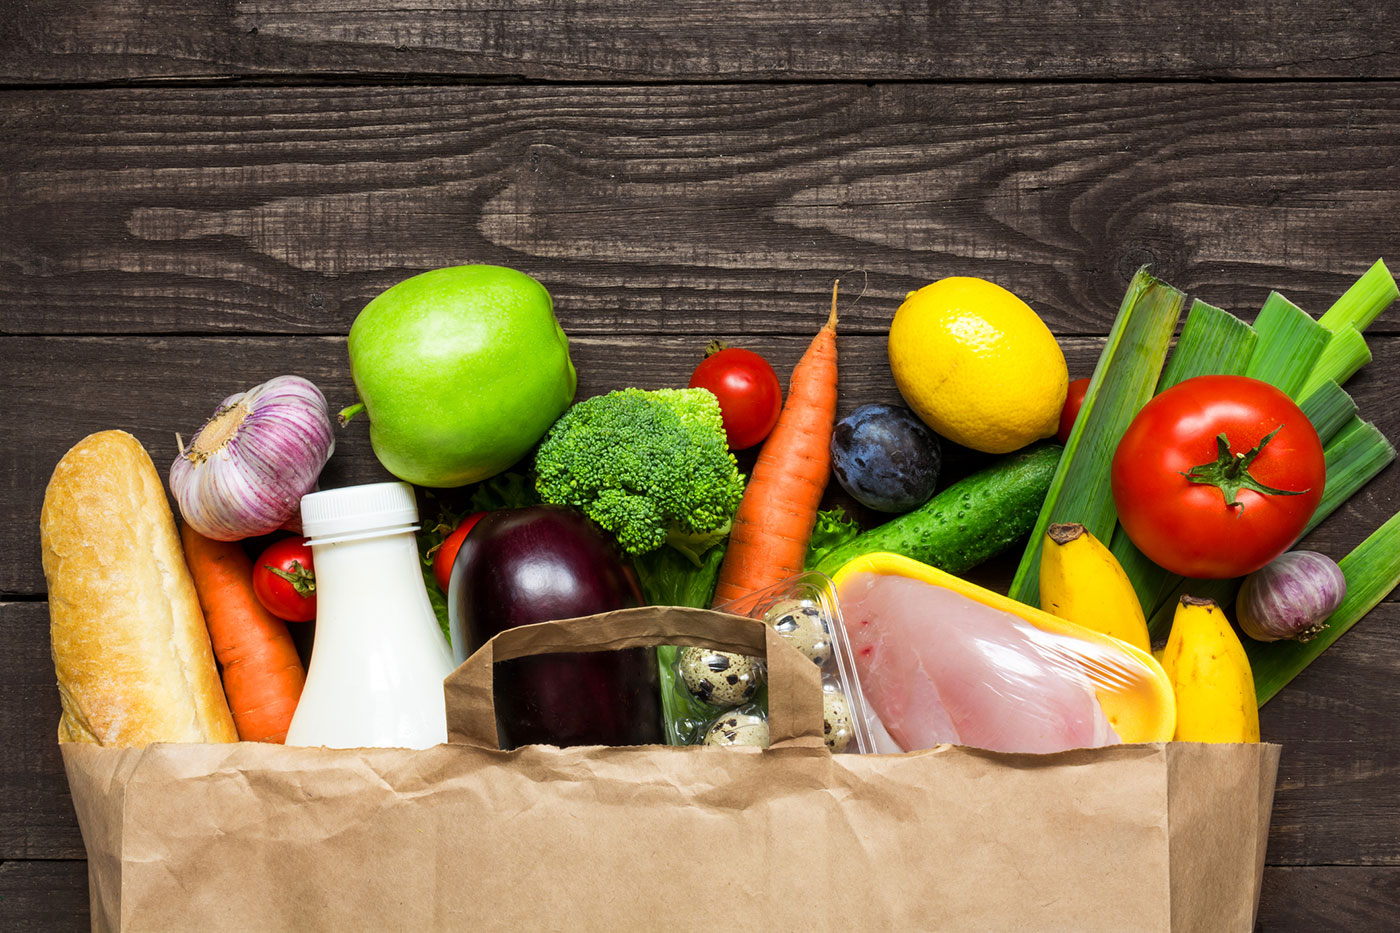 Groceries-ThinkstockPhotos-836782690.jpg